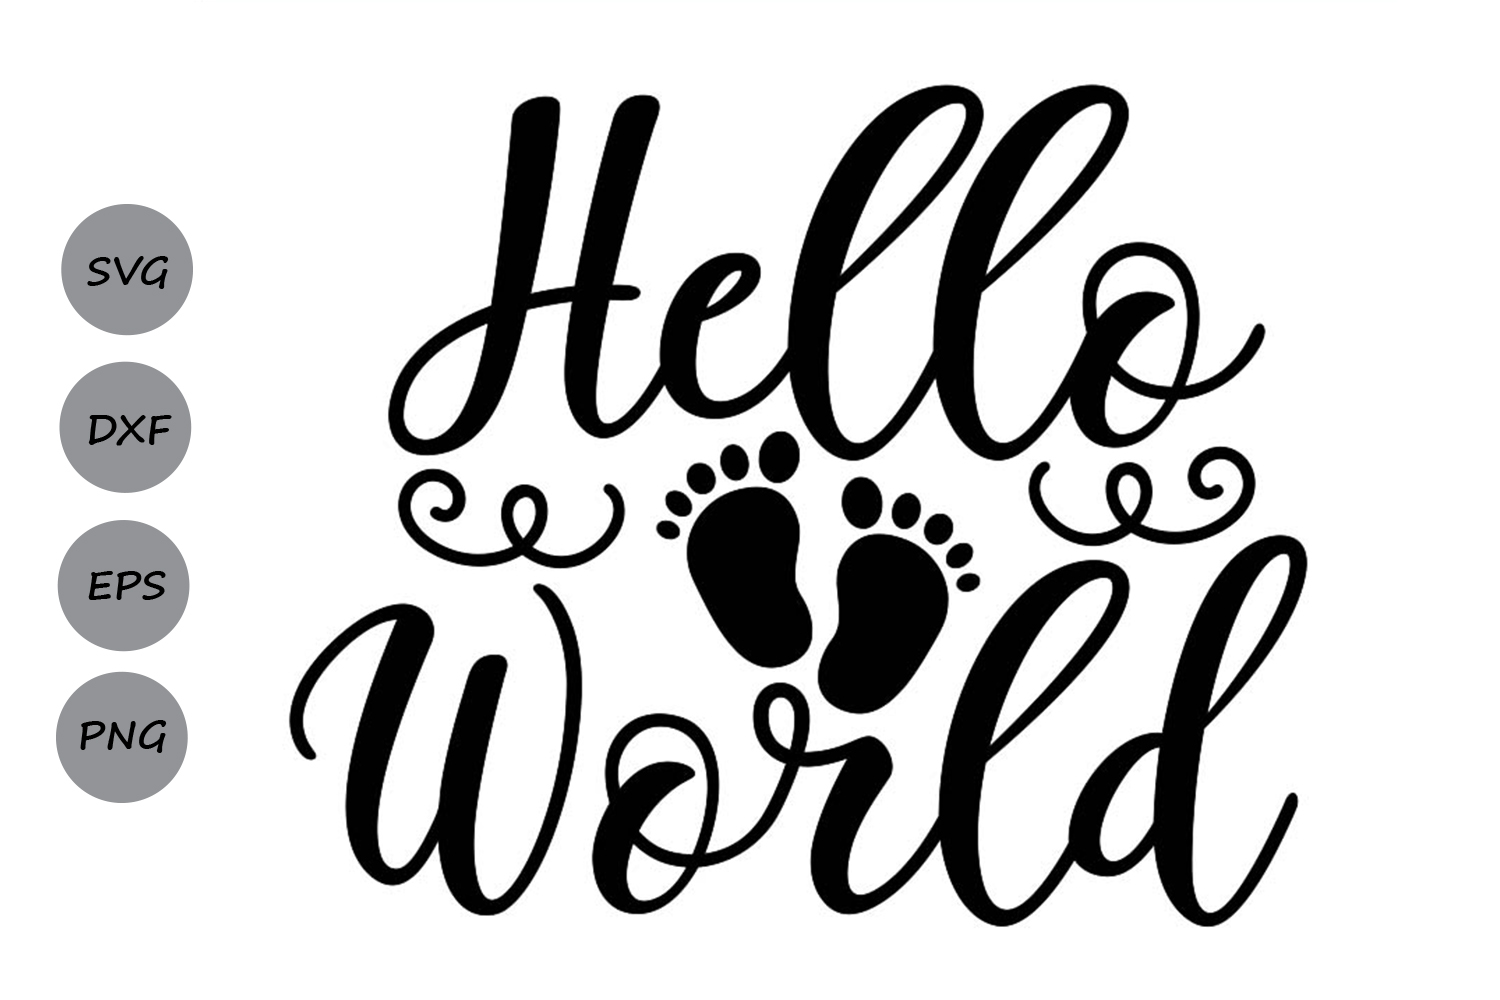 Download Free Hello World Graphic By Cosmosfineart Creative Fabrica for Cricut Explore, Silhouette and other cutting machines.